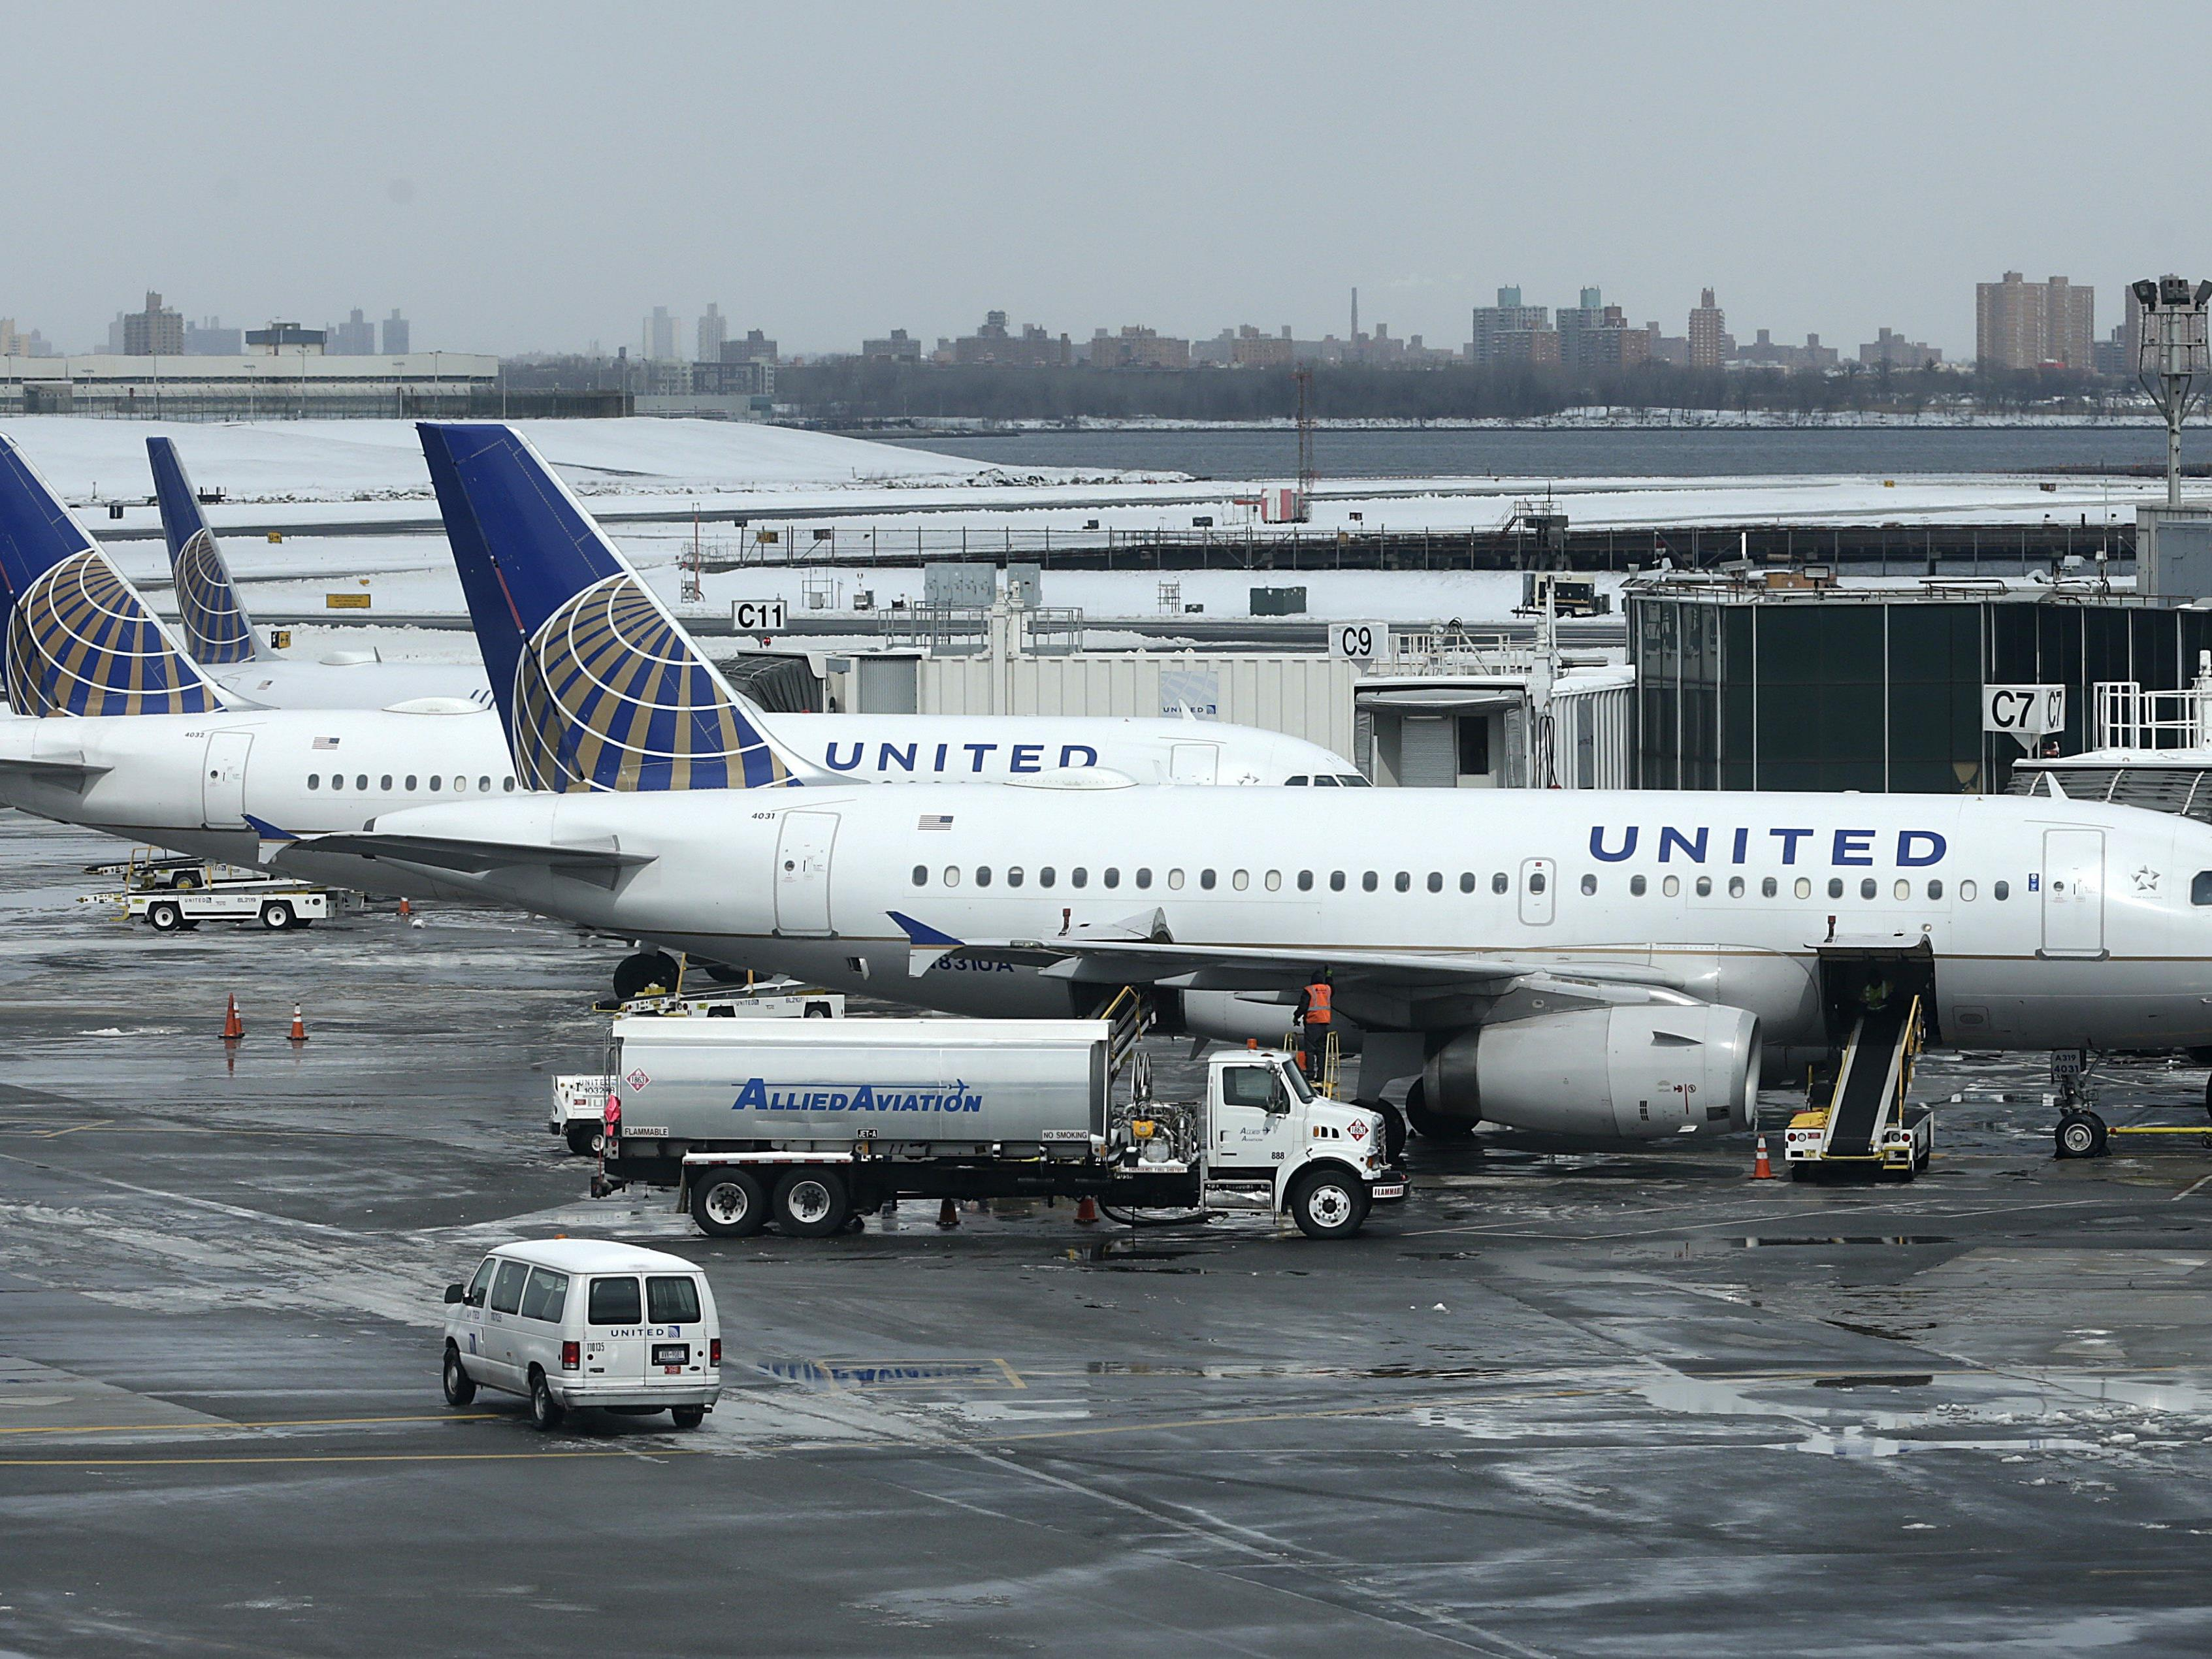 Erneuter Rauswurf bei United Airlines.